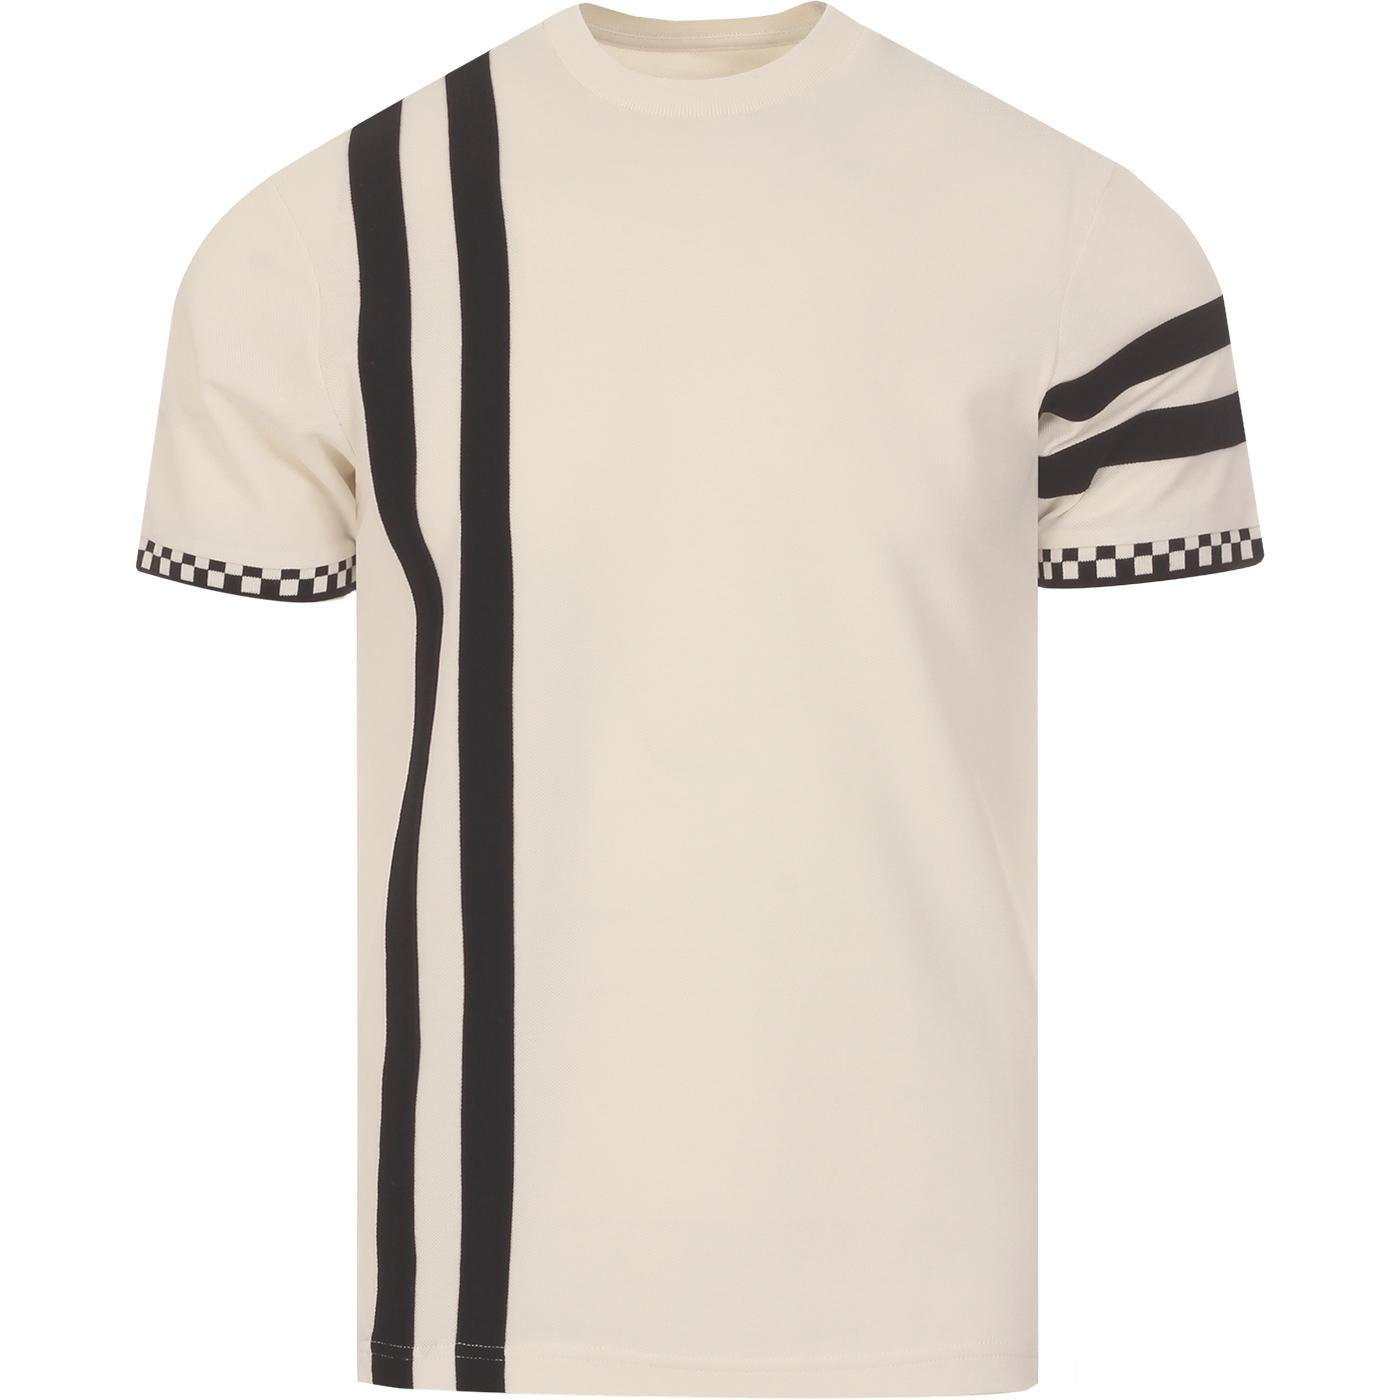 SKA & SOUL Mod Checkerboard Racing Stripe Tee ECRU